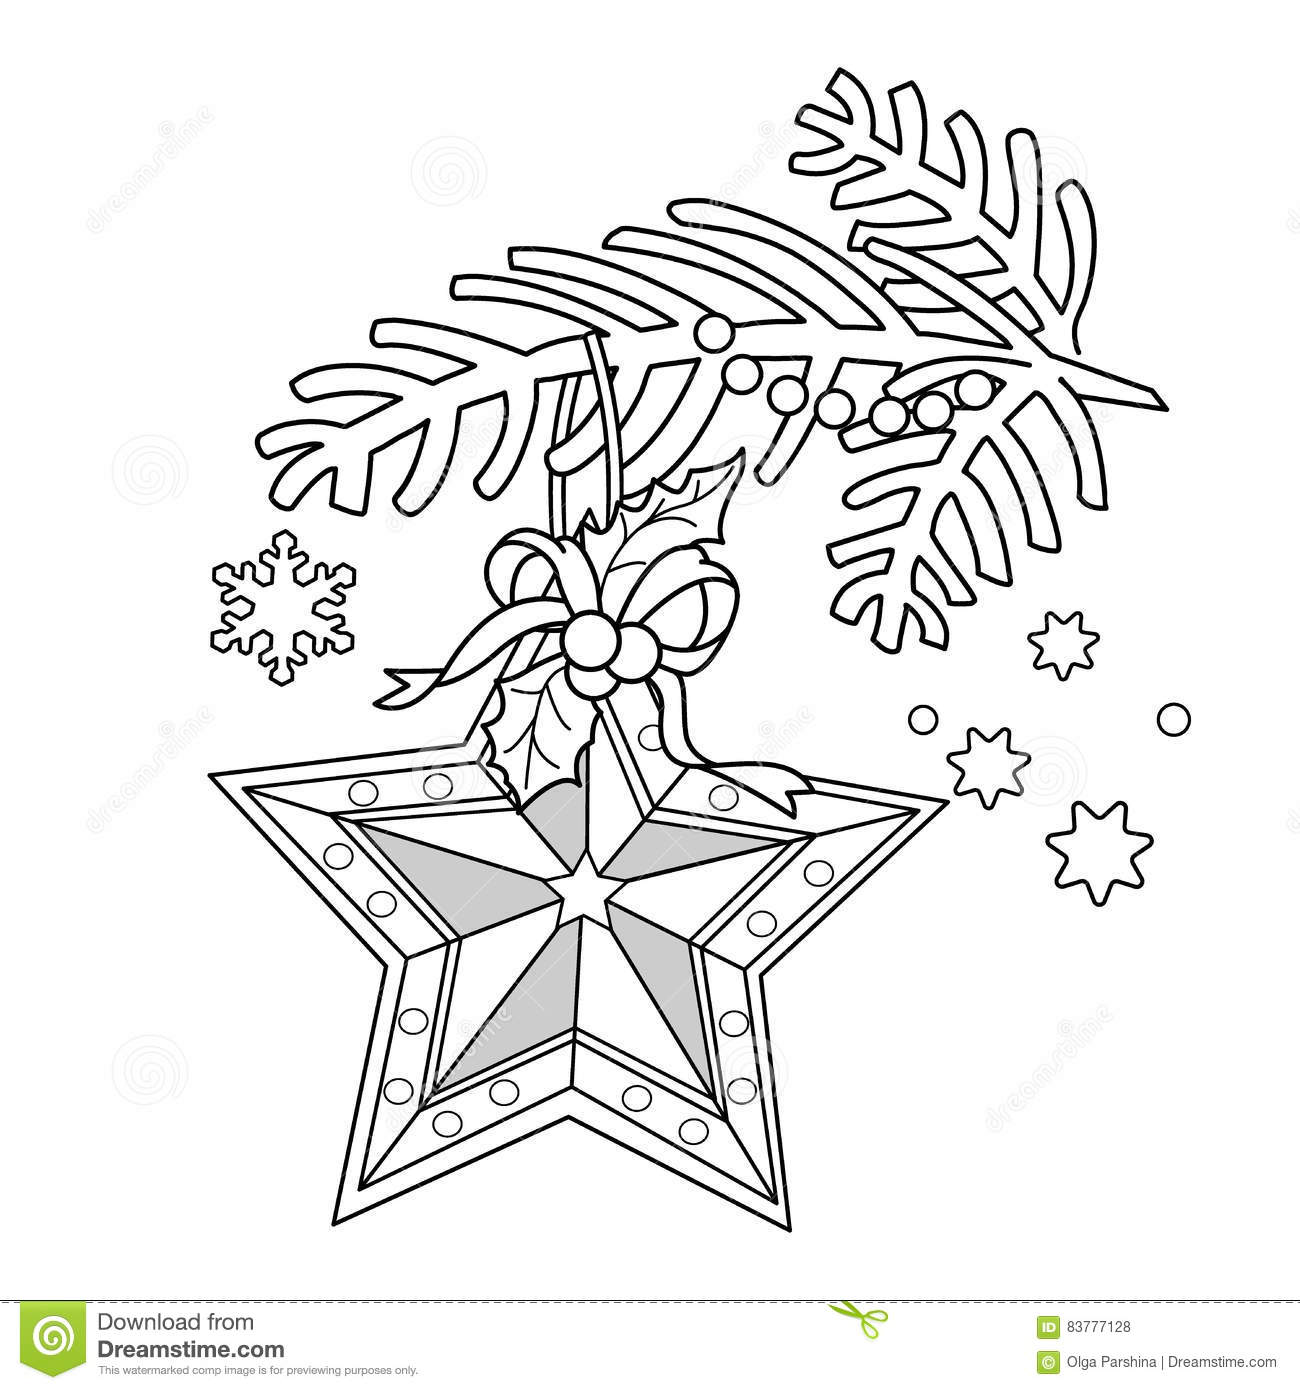 coloring coloring page outline of christmas decoration star christmas tree branch new year